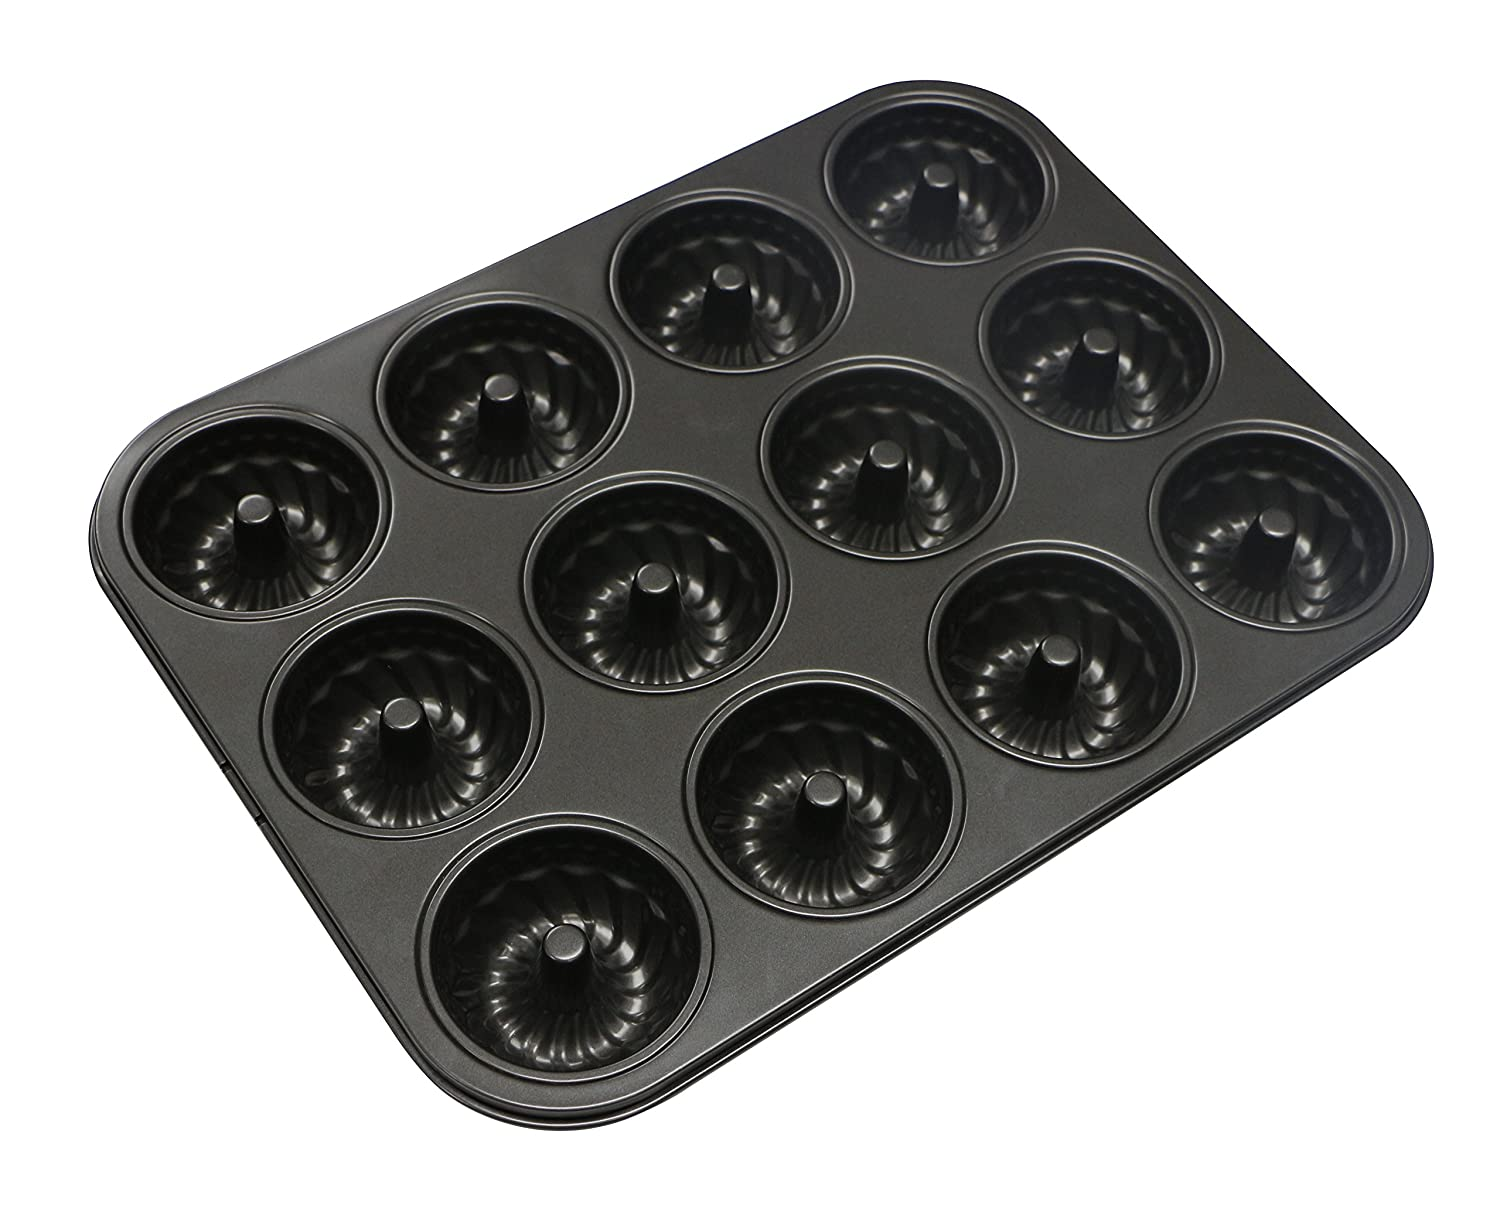 Webake 12 Mini Bundt Cake Tin for Muffins Cupcake Cases, Bronnies Cake Pudding NON Stick Steel Cooking ø6.8 cm